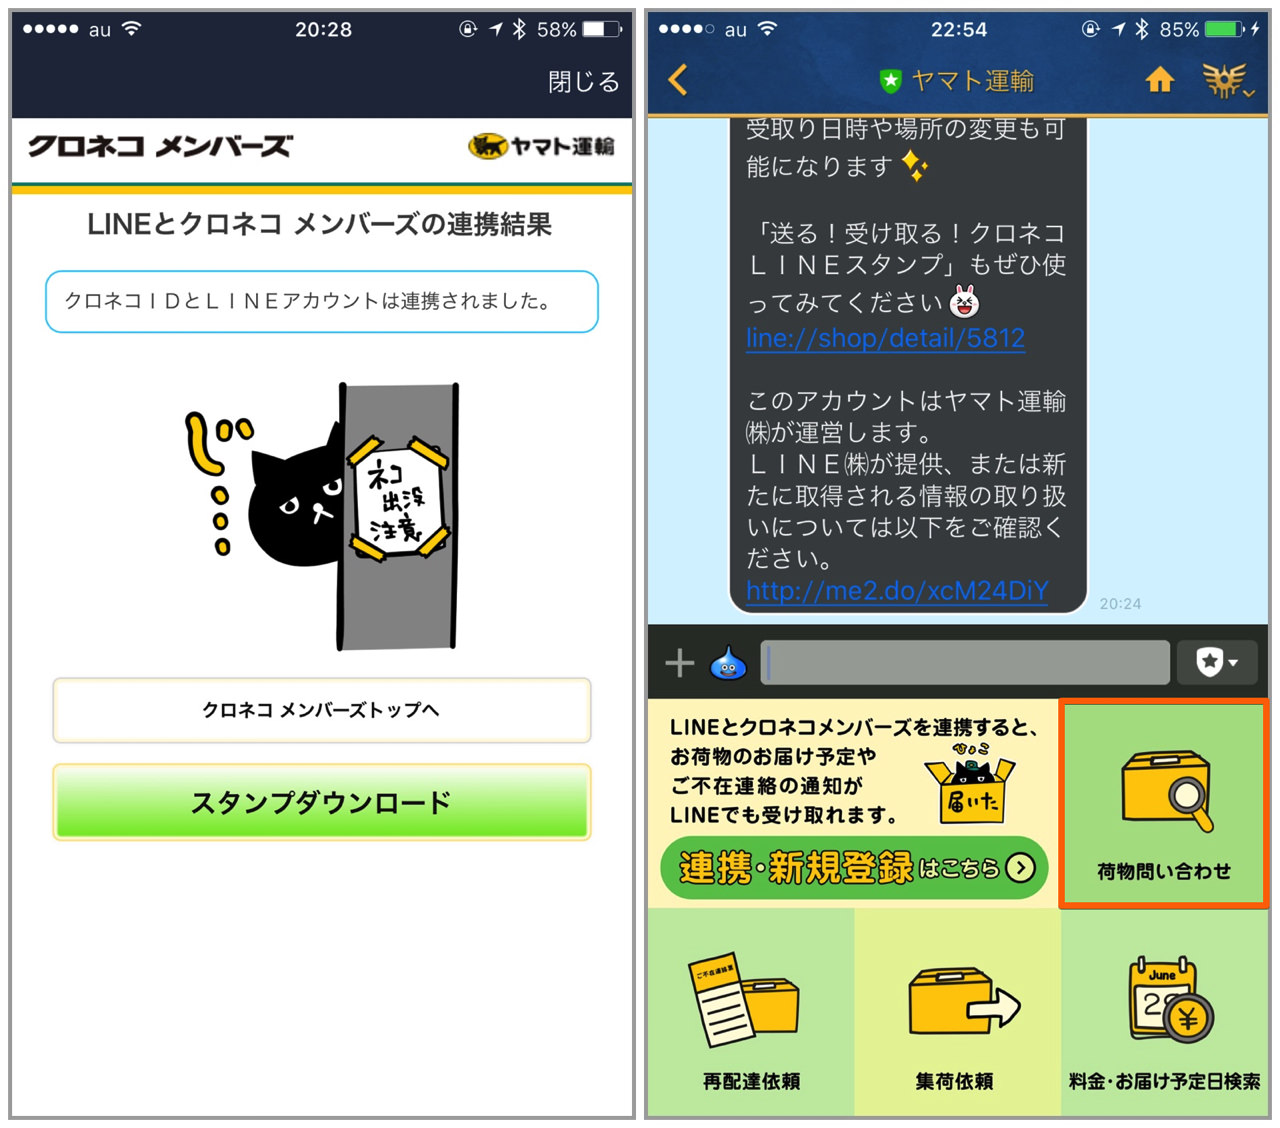 Yamato transport is ready for cooperation with line4